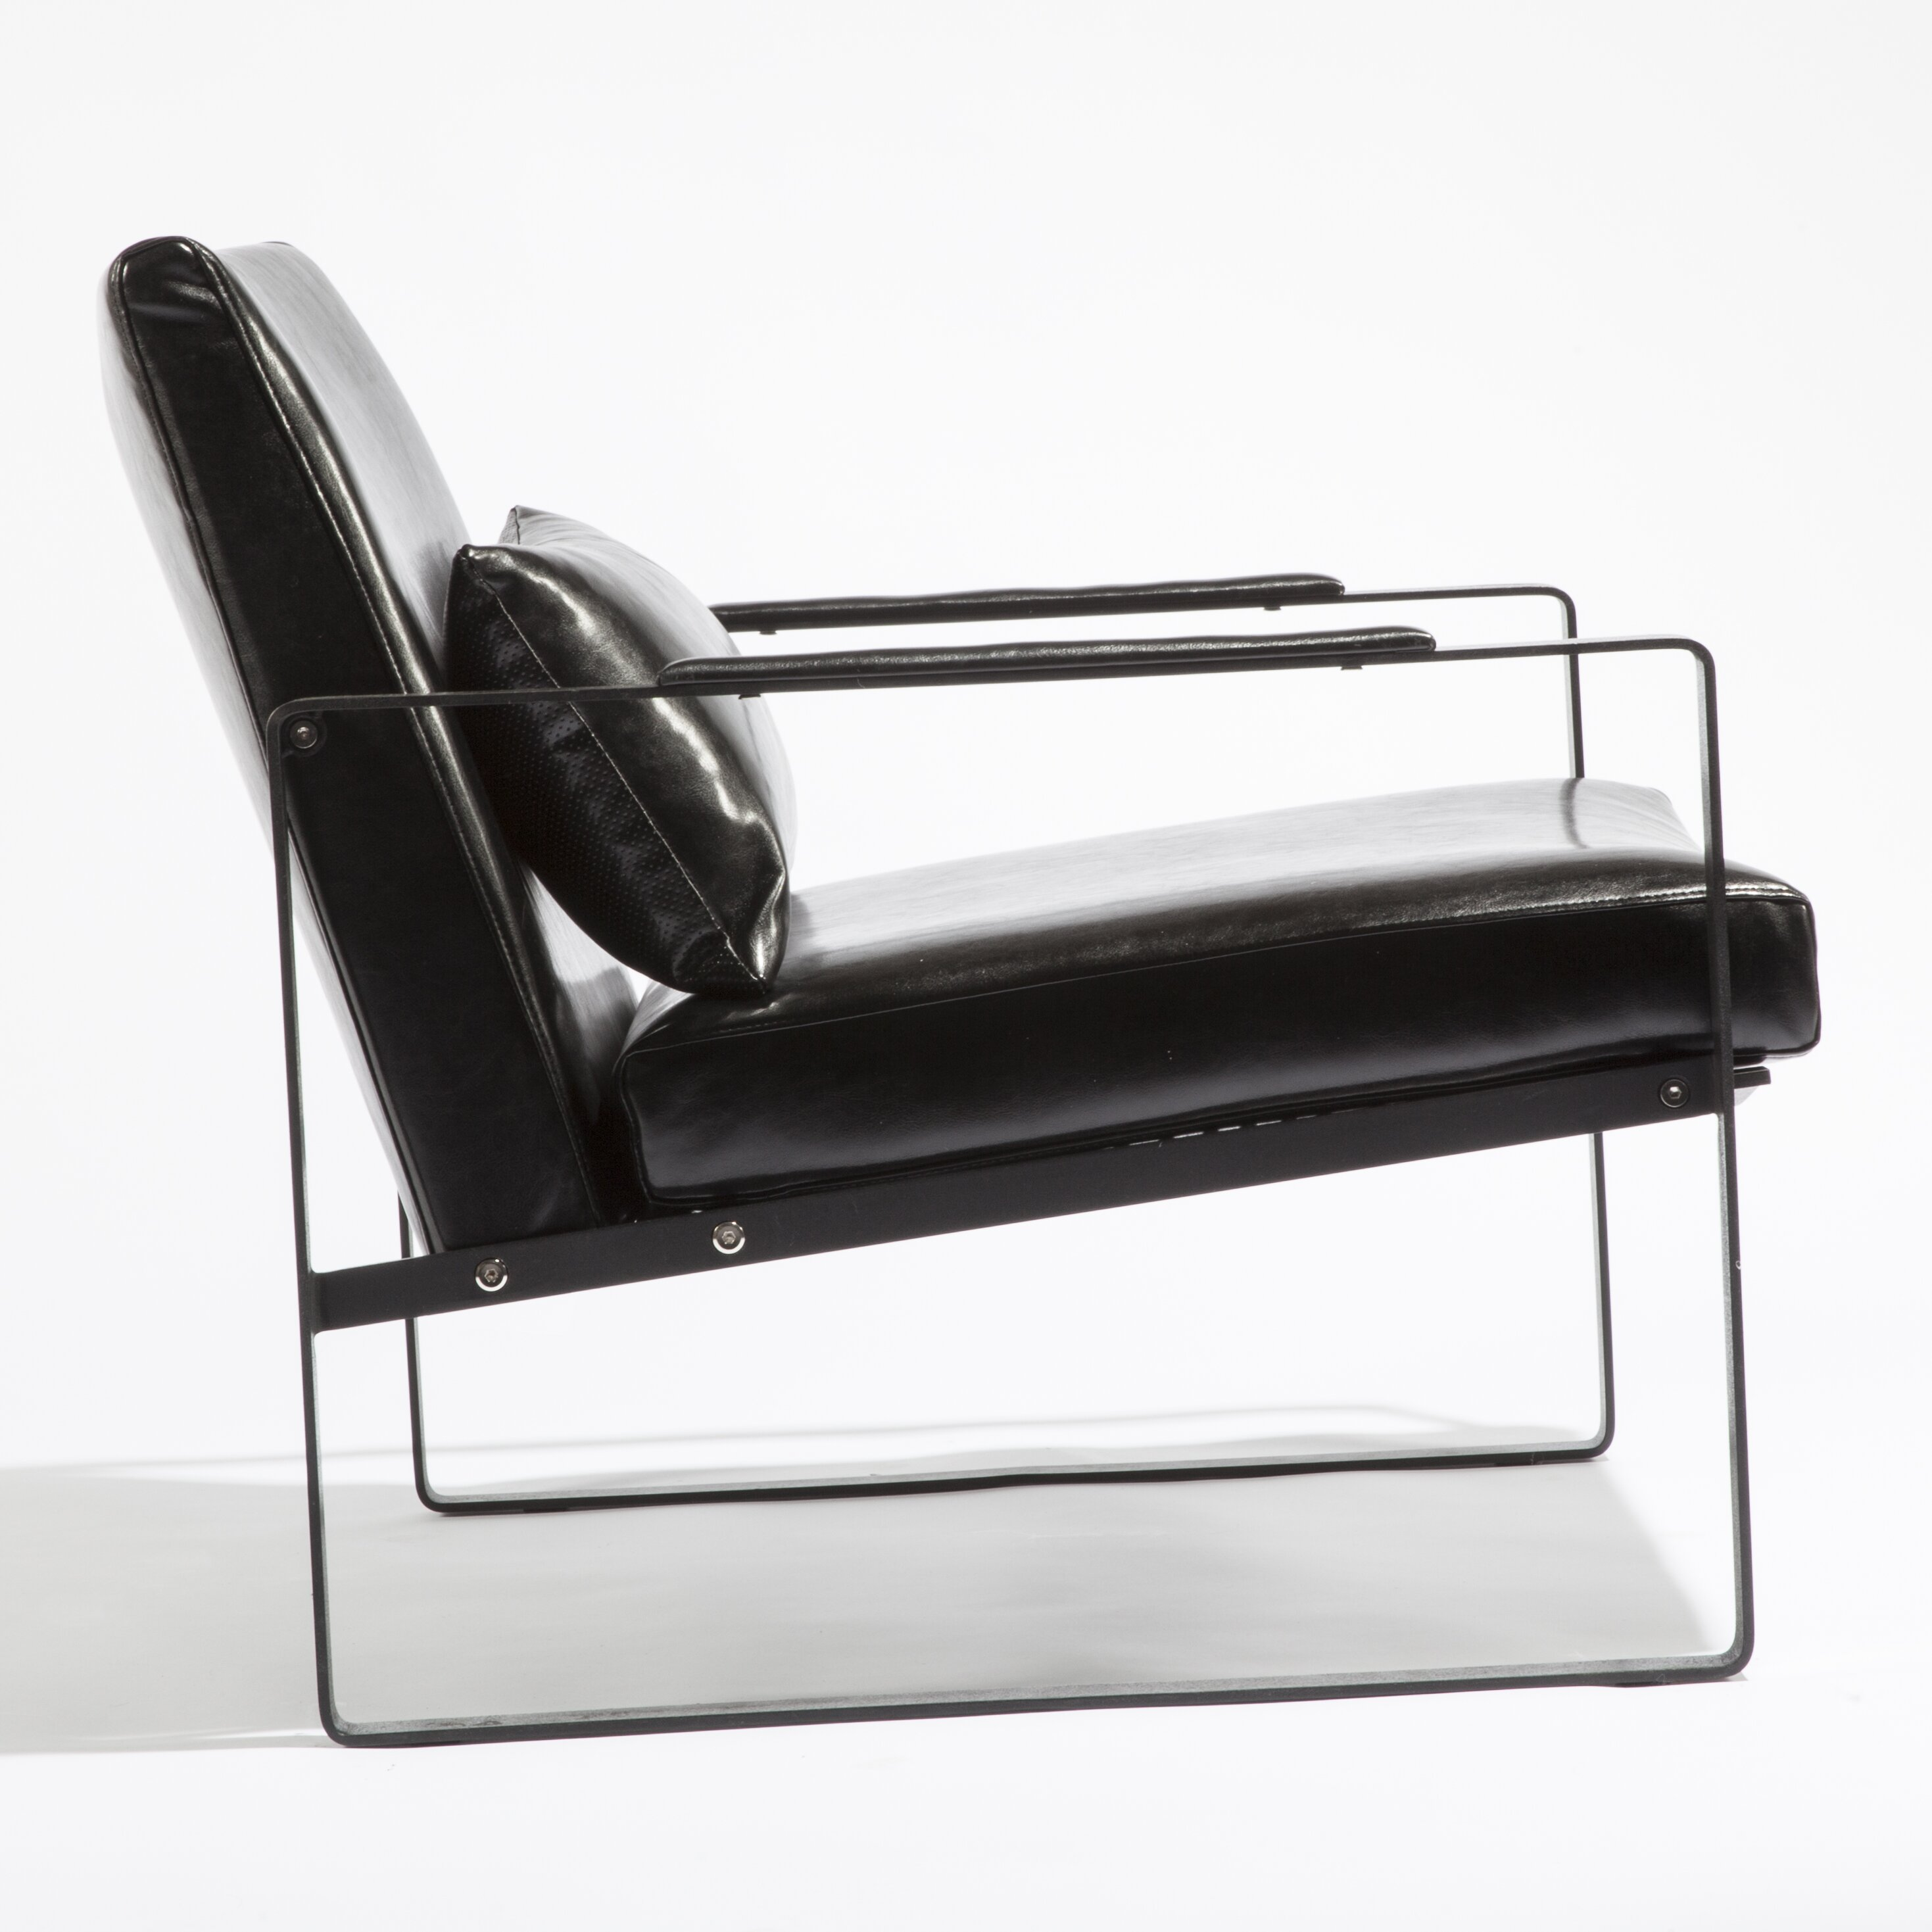 dCOR design Turku Lounge Chair